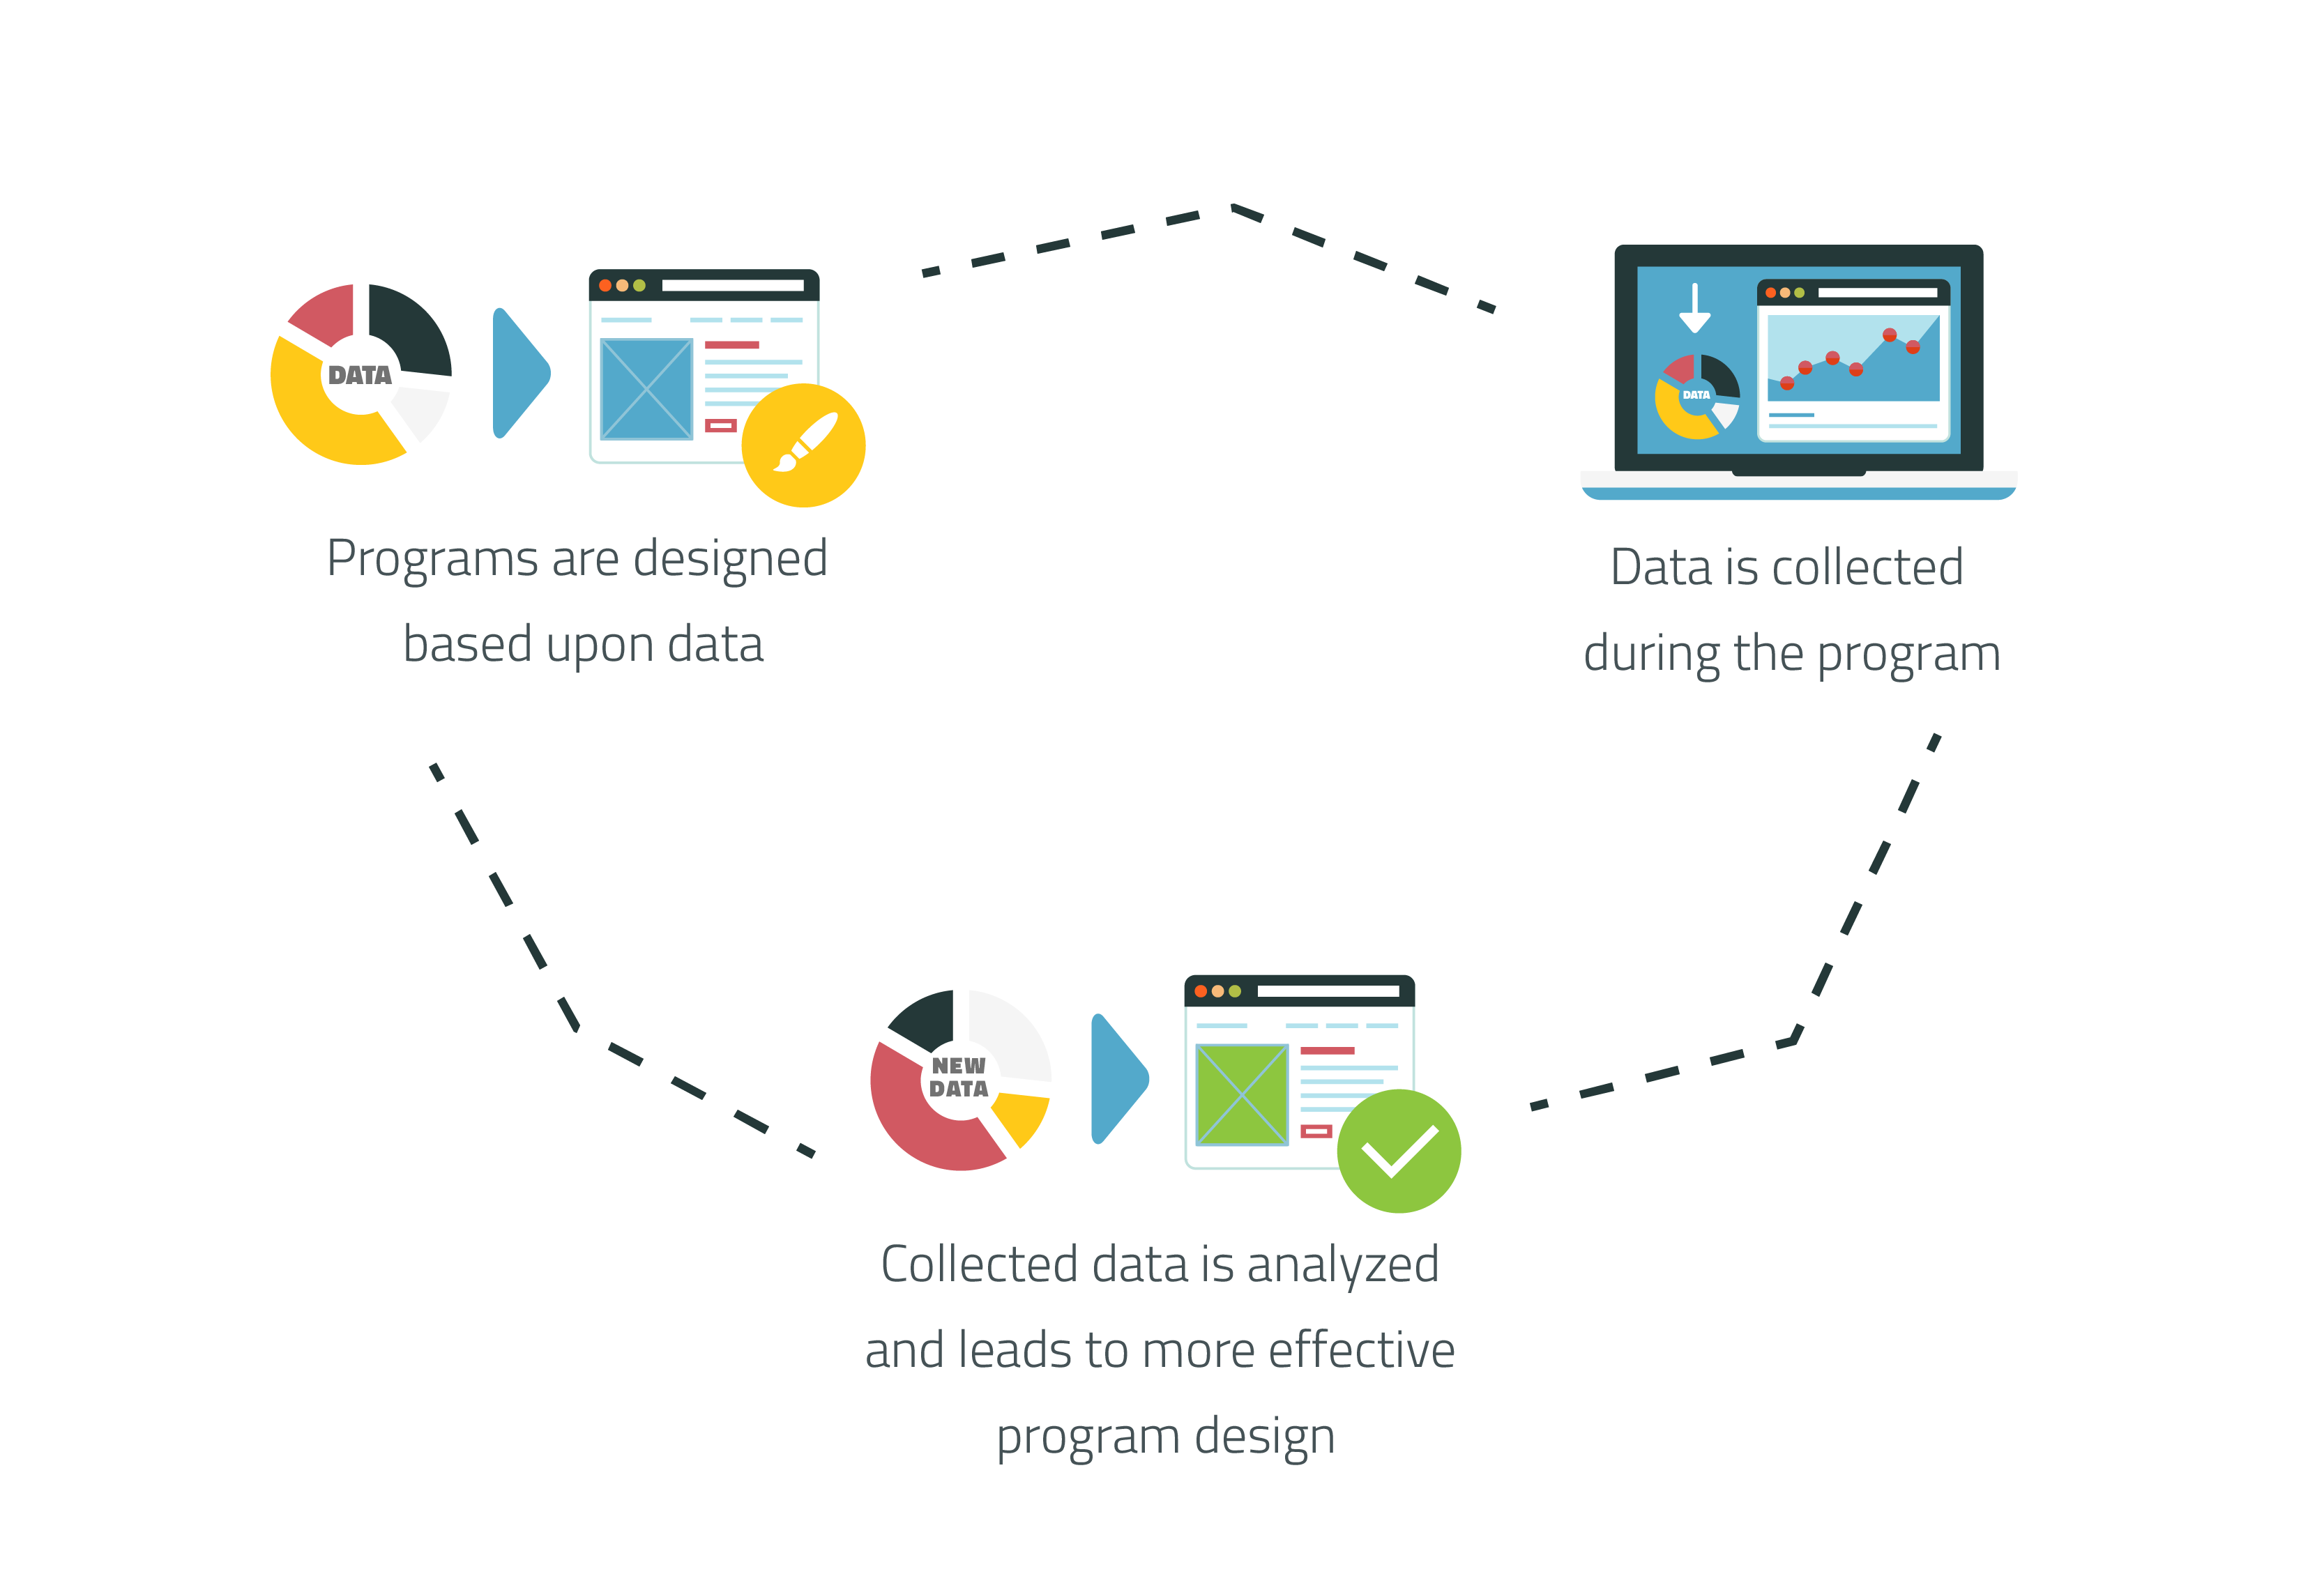 data in the program cycle